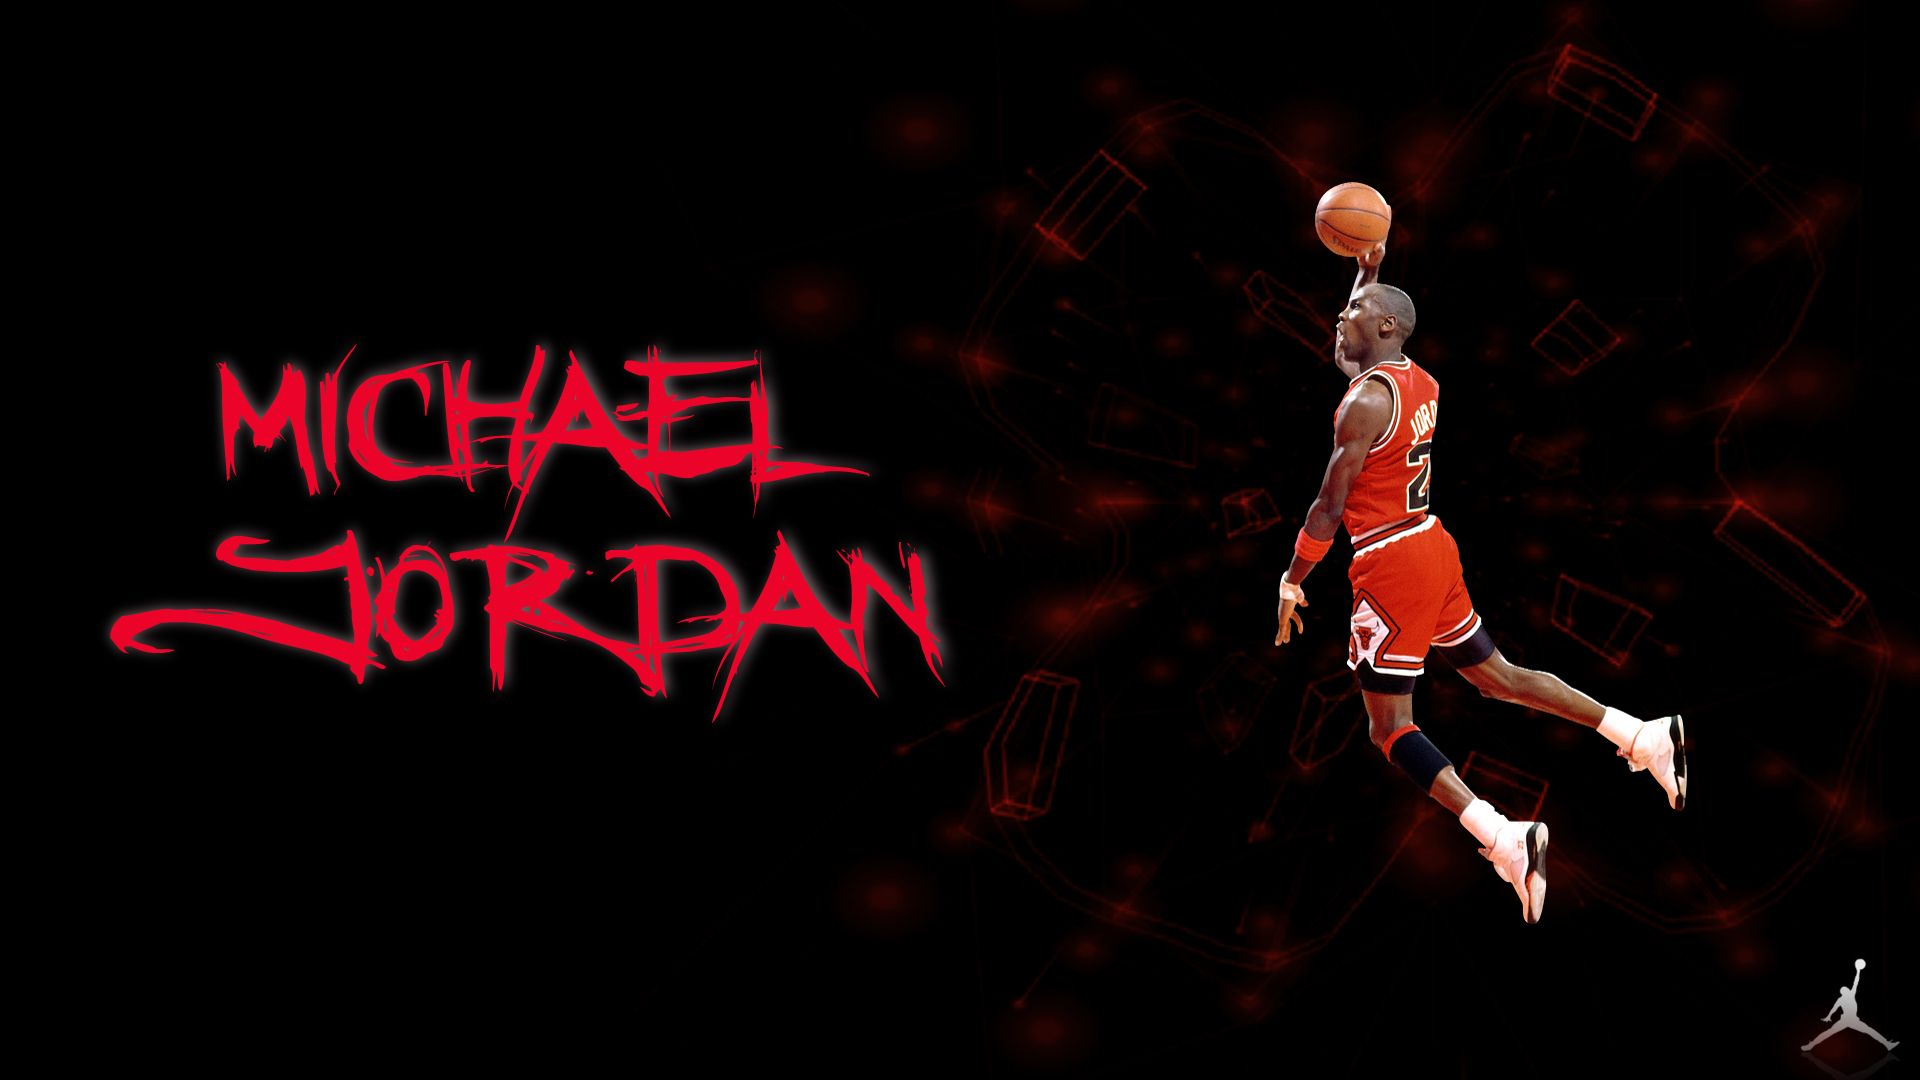 Pin free download michael jordan wallpaper 28957 hd wallpapers on - Michael Jordan Wallpaper Hd